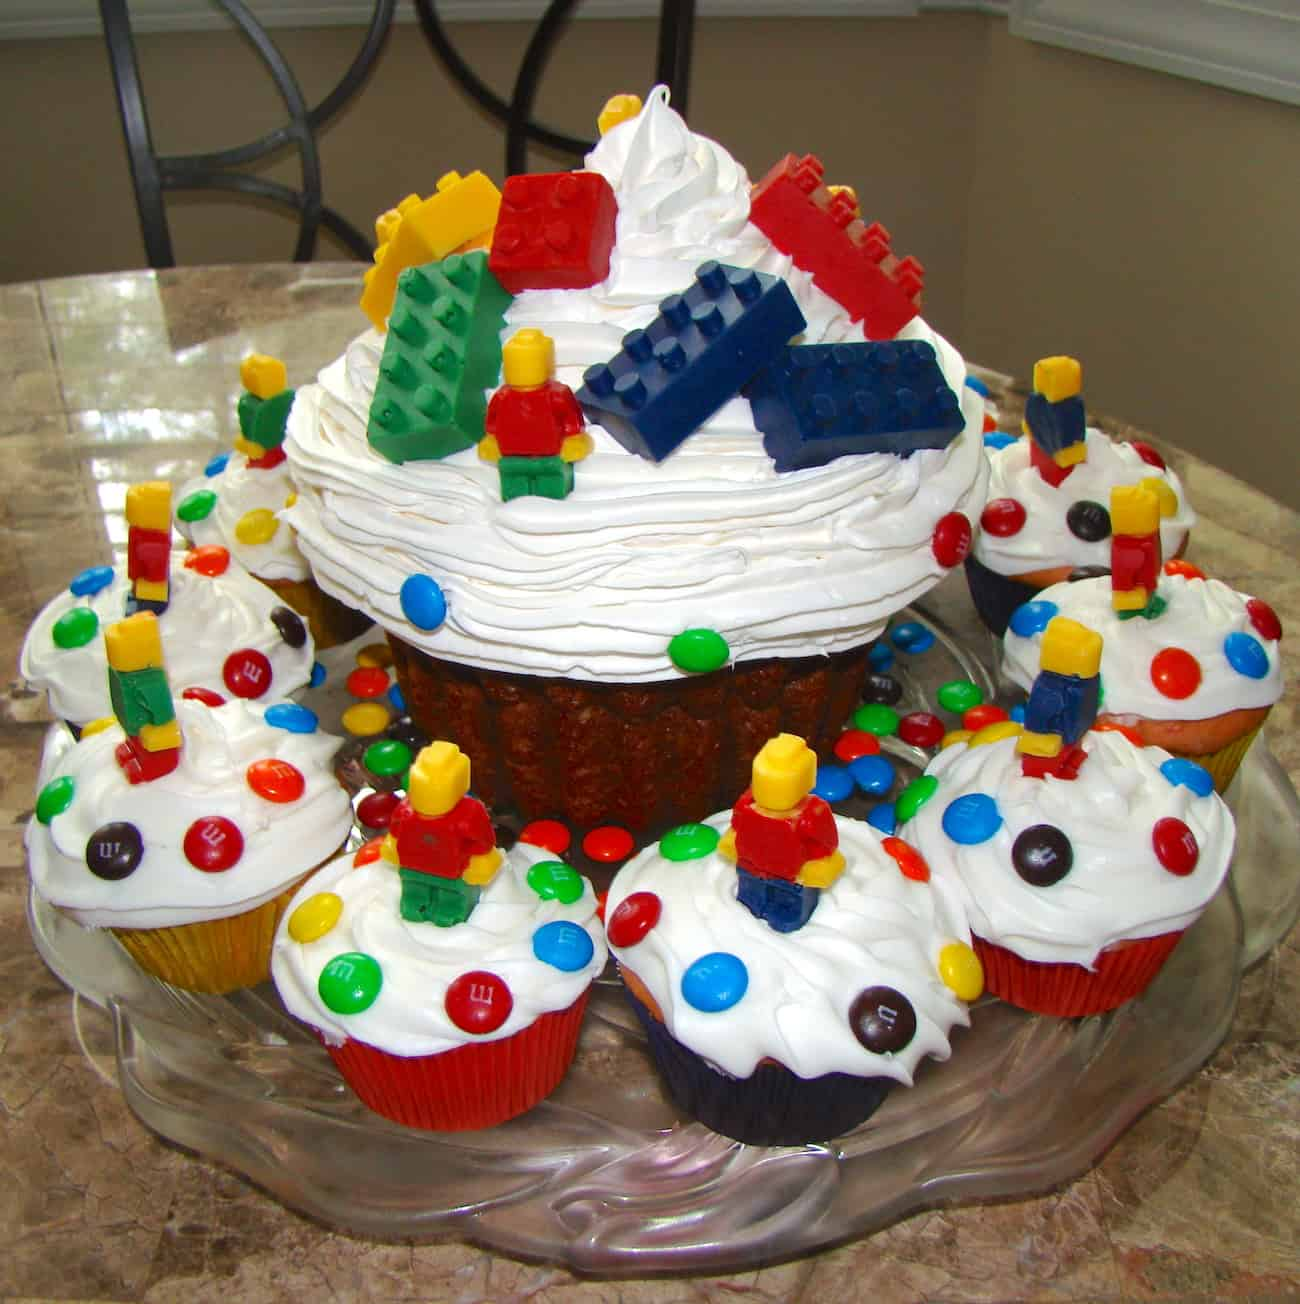 lego cake from giant cupcake pan